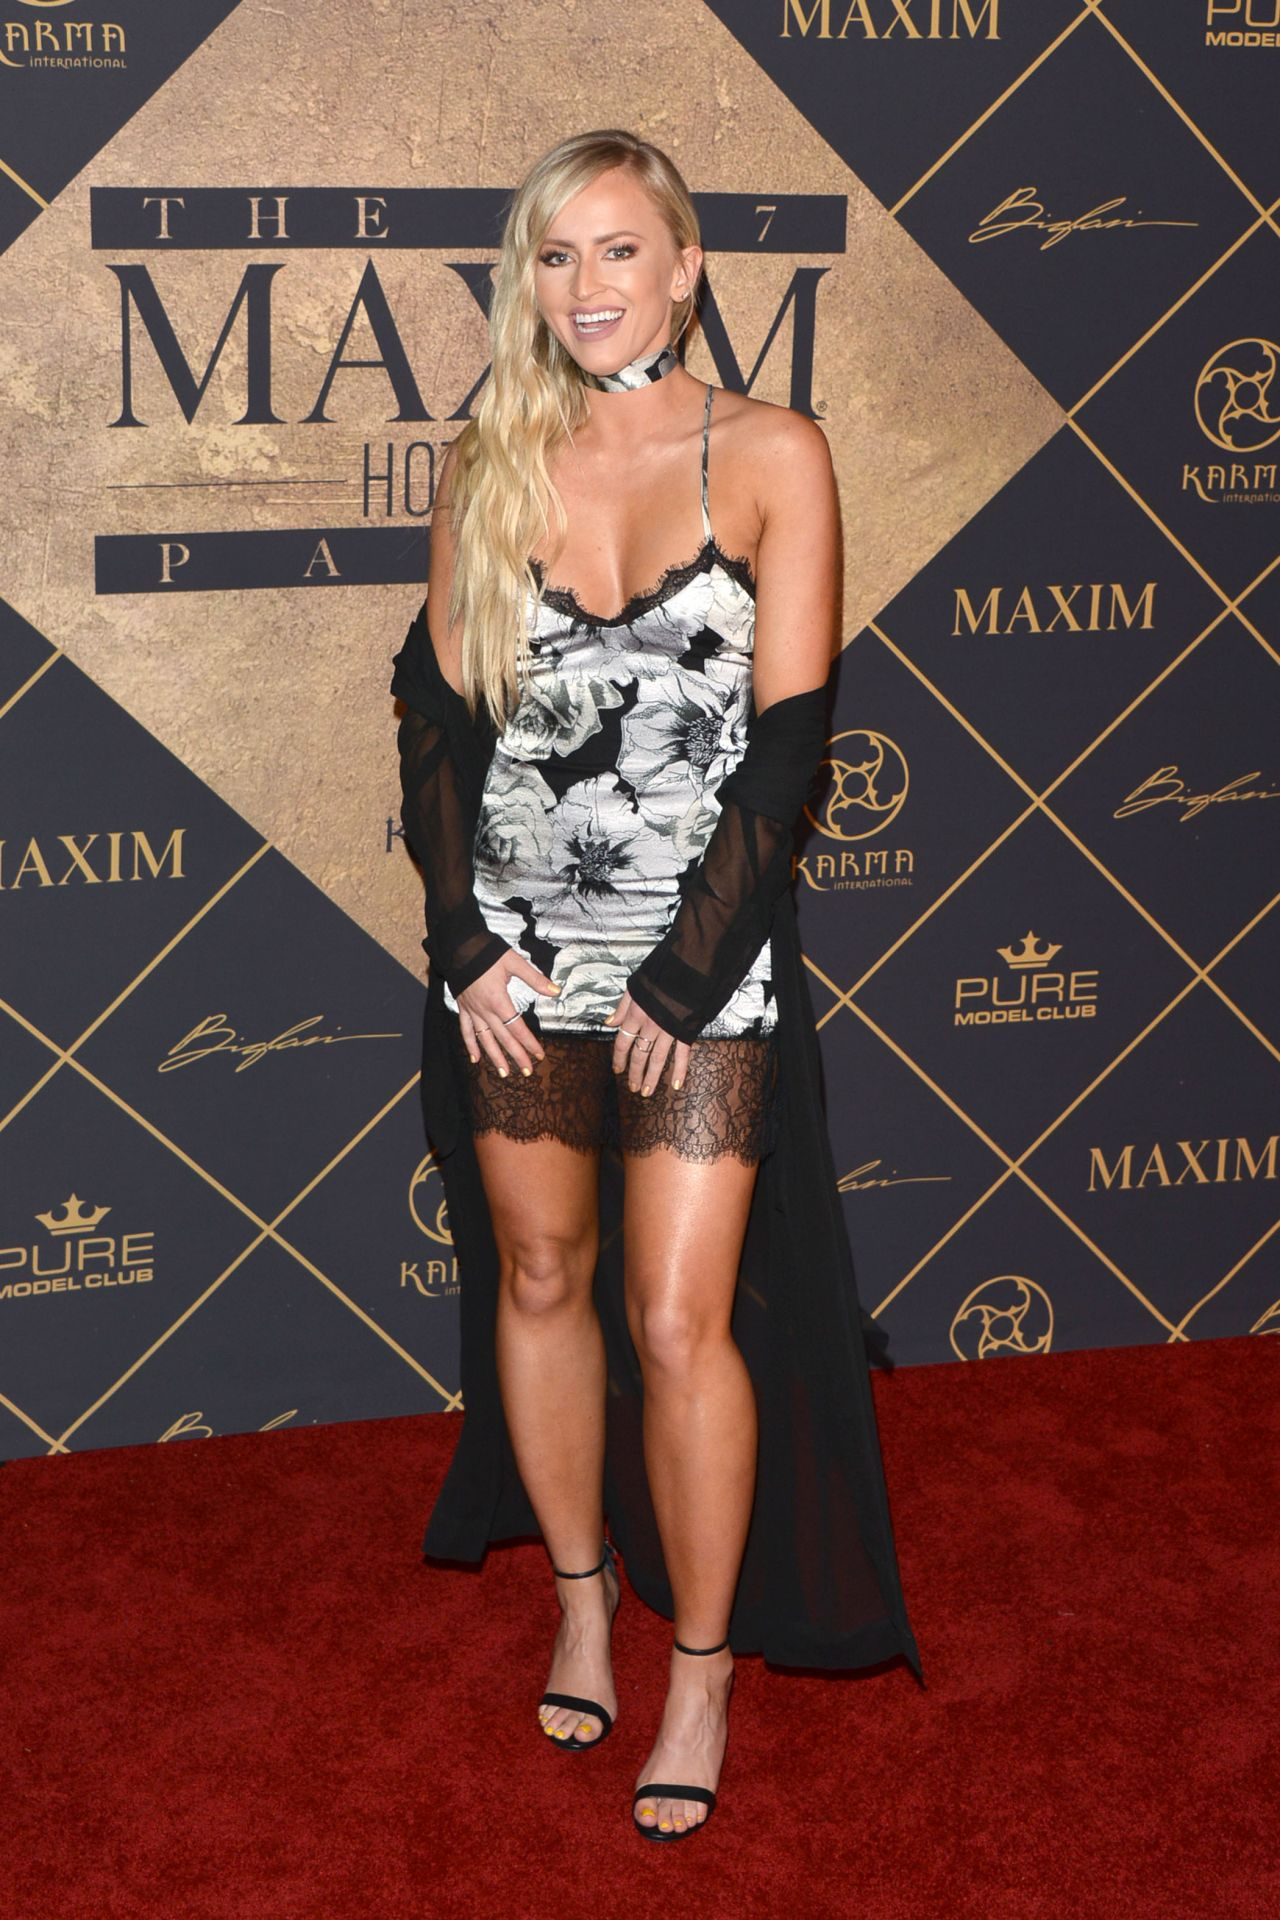 danielle moinet maxim hot 100 event in hollywood 06242017